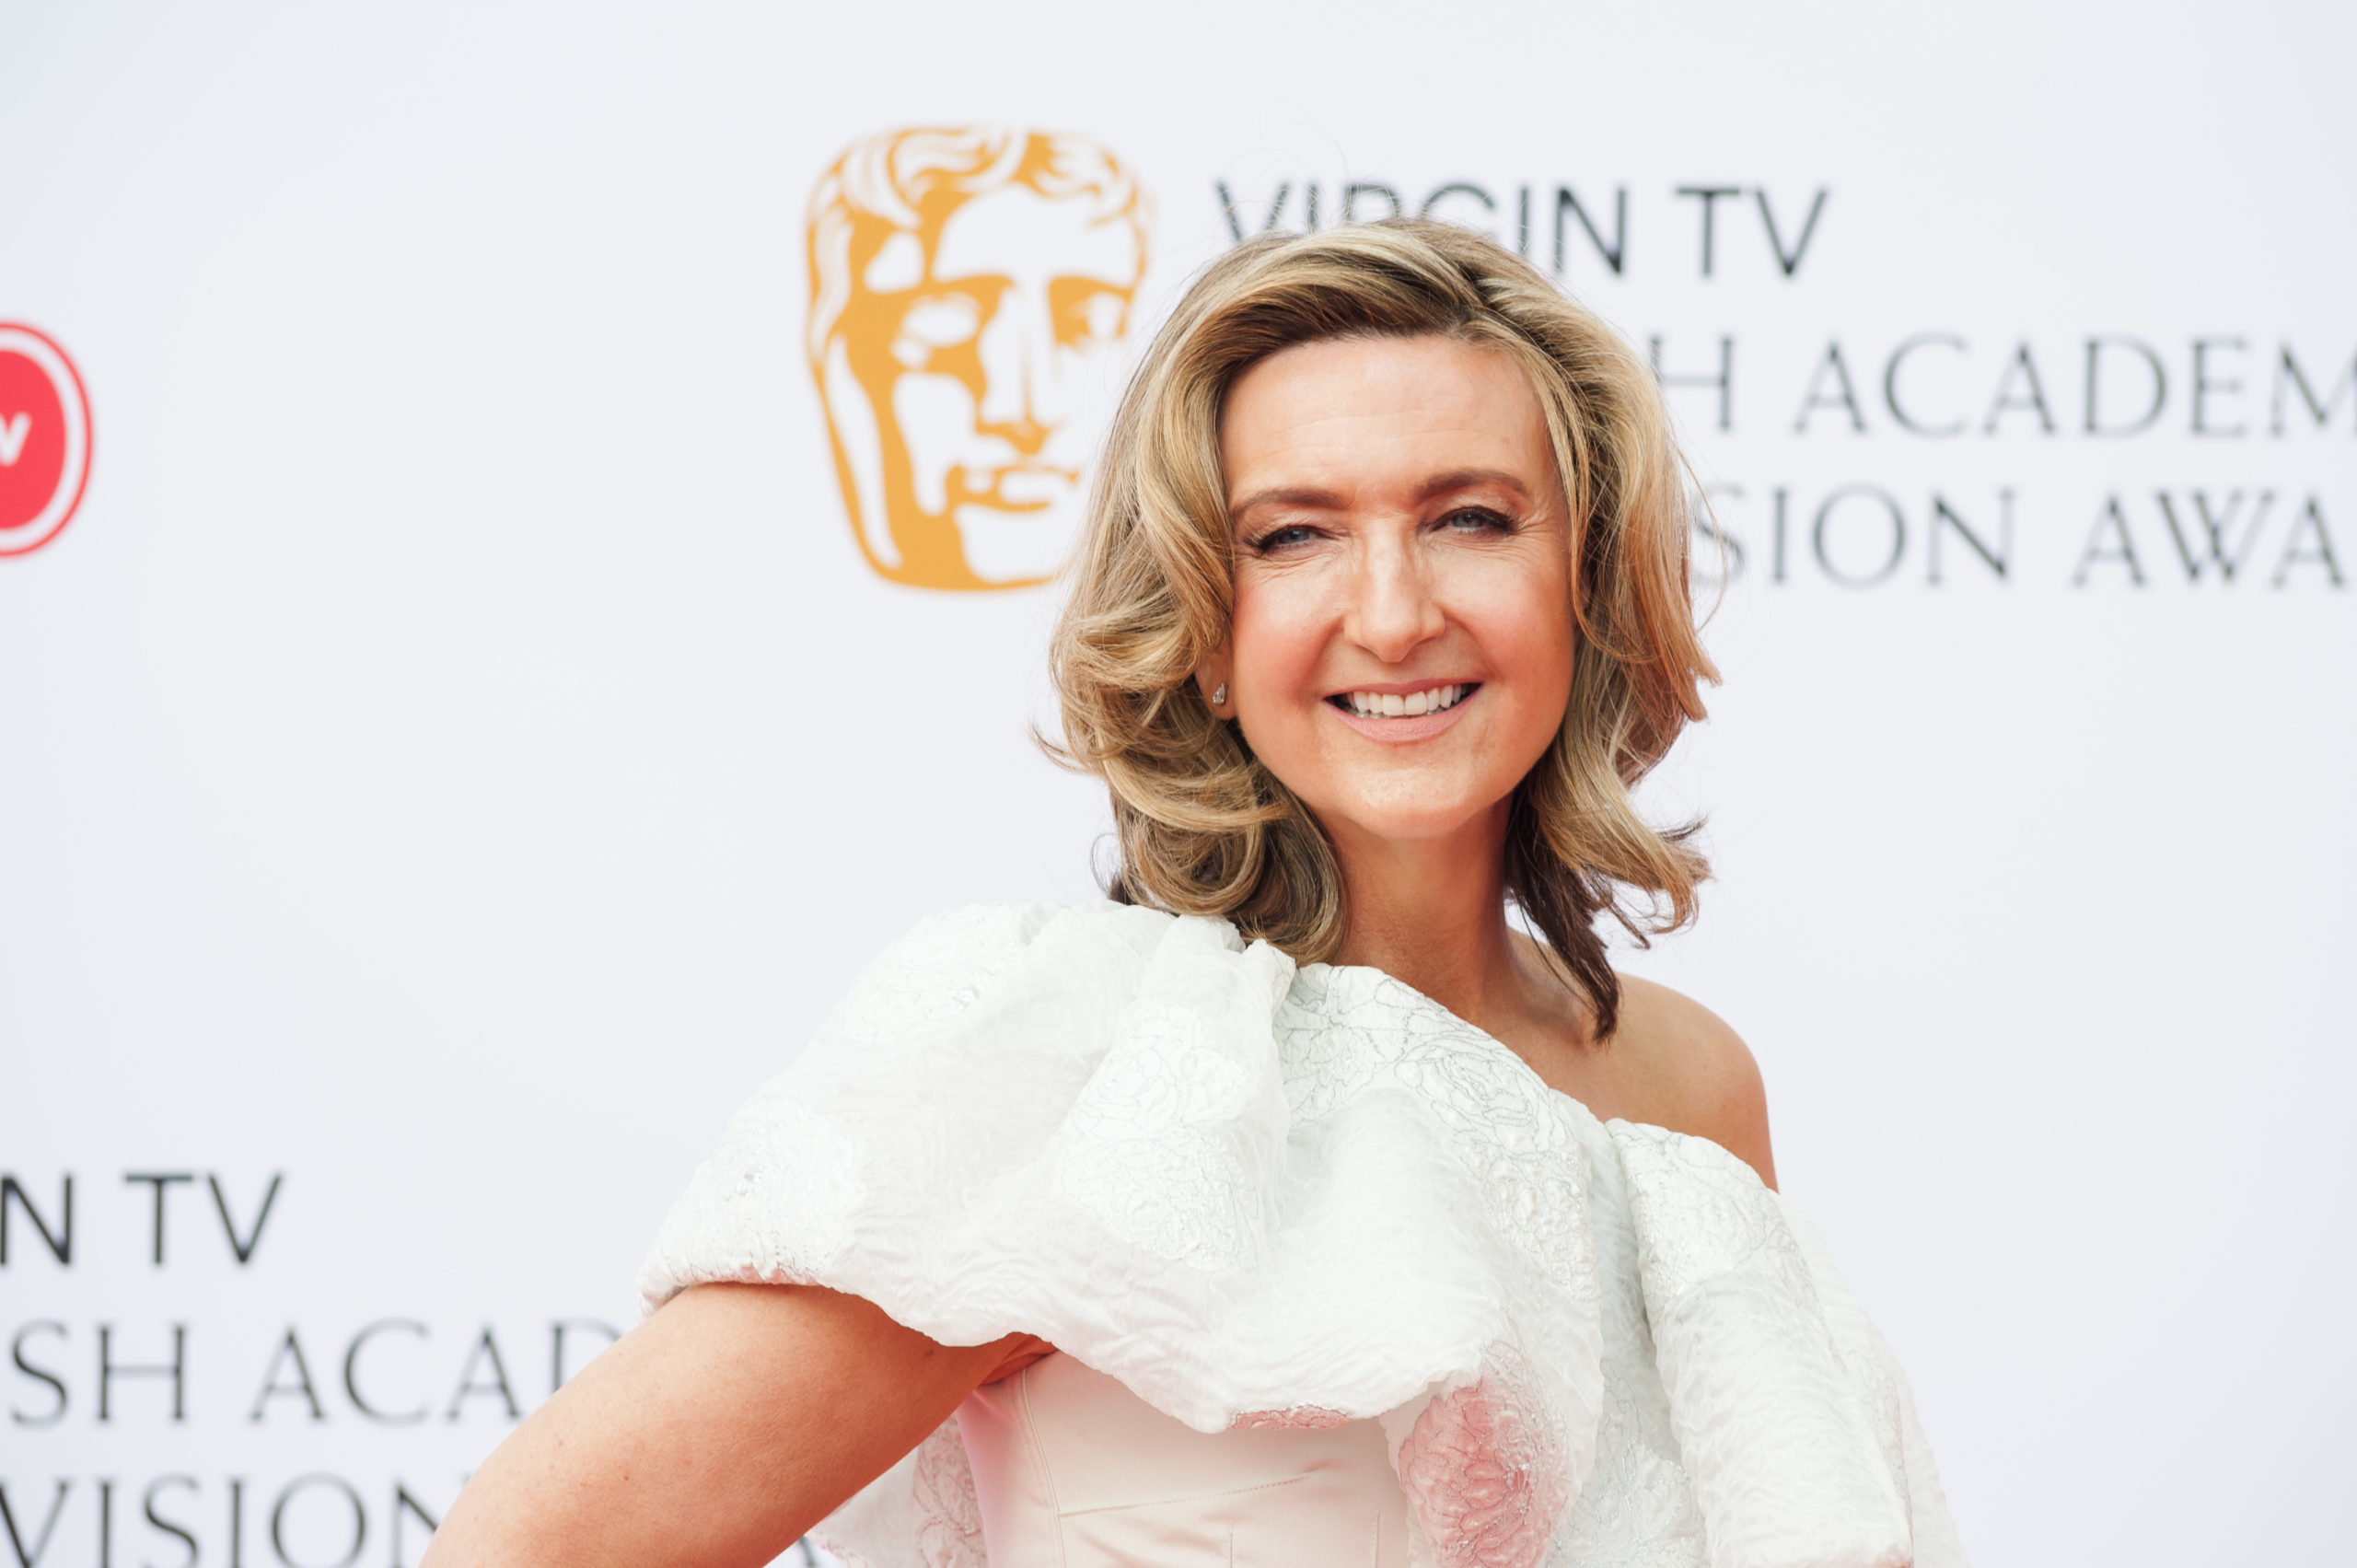 Victoria Derbyshire attends the Virgin TV British Academy Television Awards ceremony at the Royal Festival Hall on May 13, 2018 in London, United Kingdom. (Wiktor Szymanowicz / Barcroft Media via Getty Images)